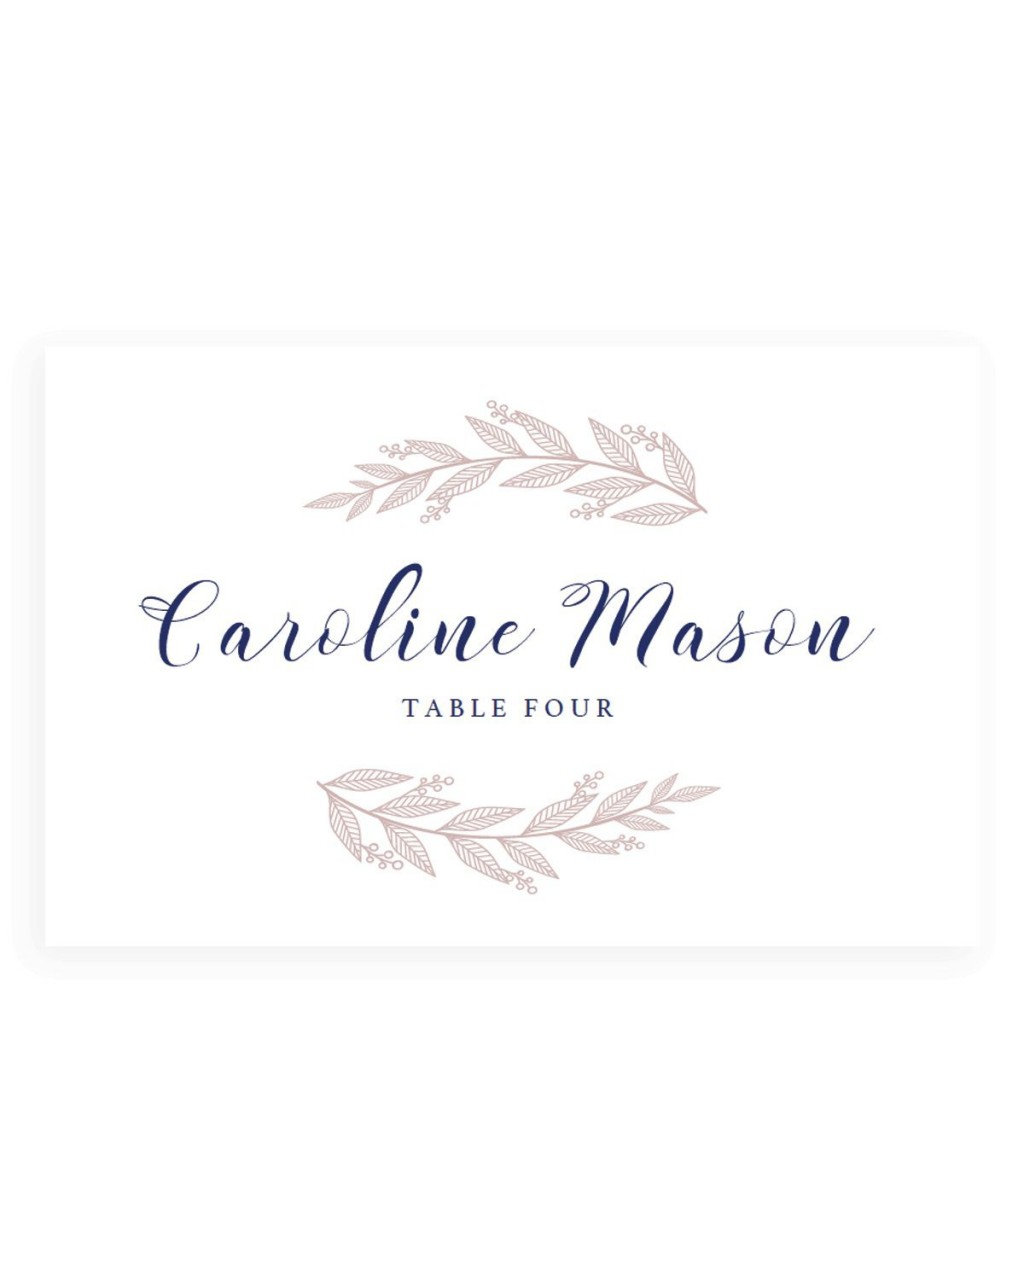 001 Surprising Wedding Name Card Template High Def  Templates For Table Place FreeLarge